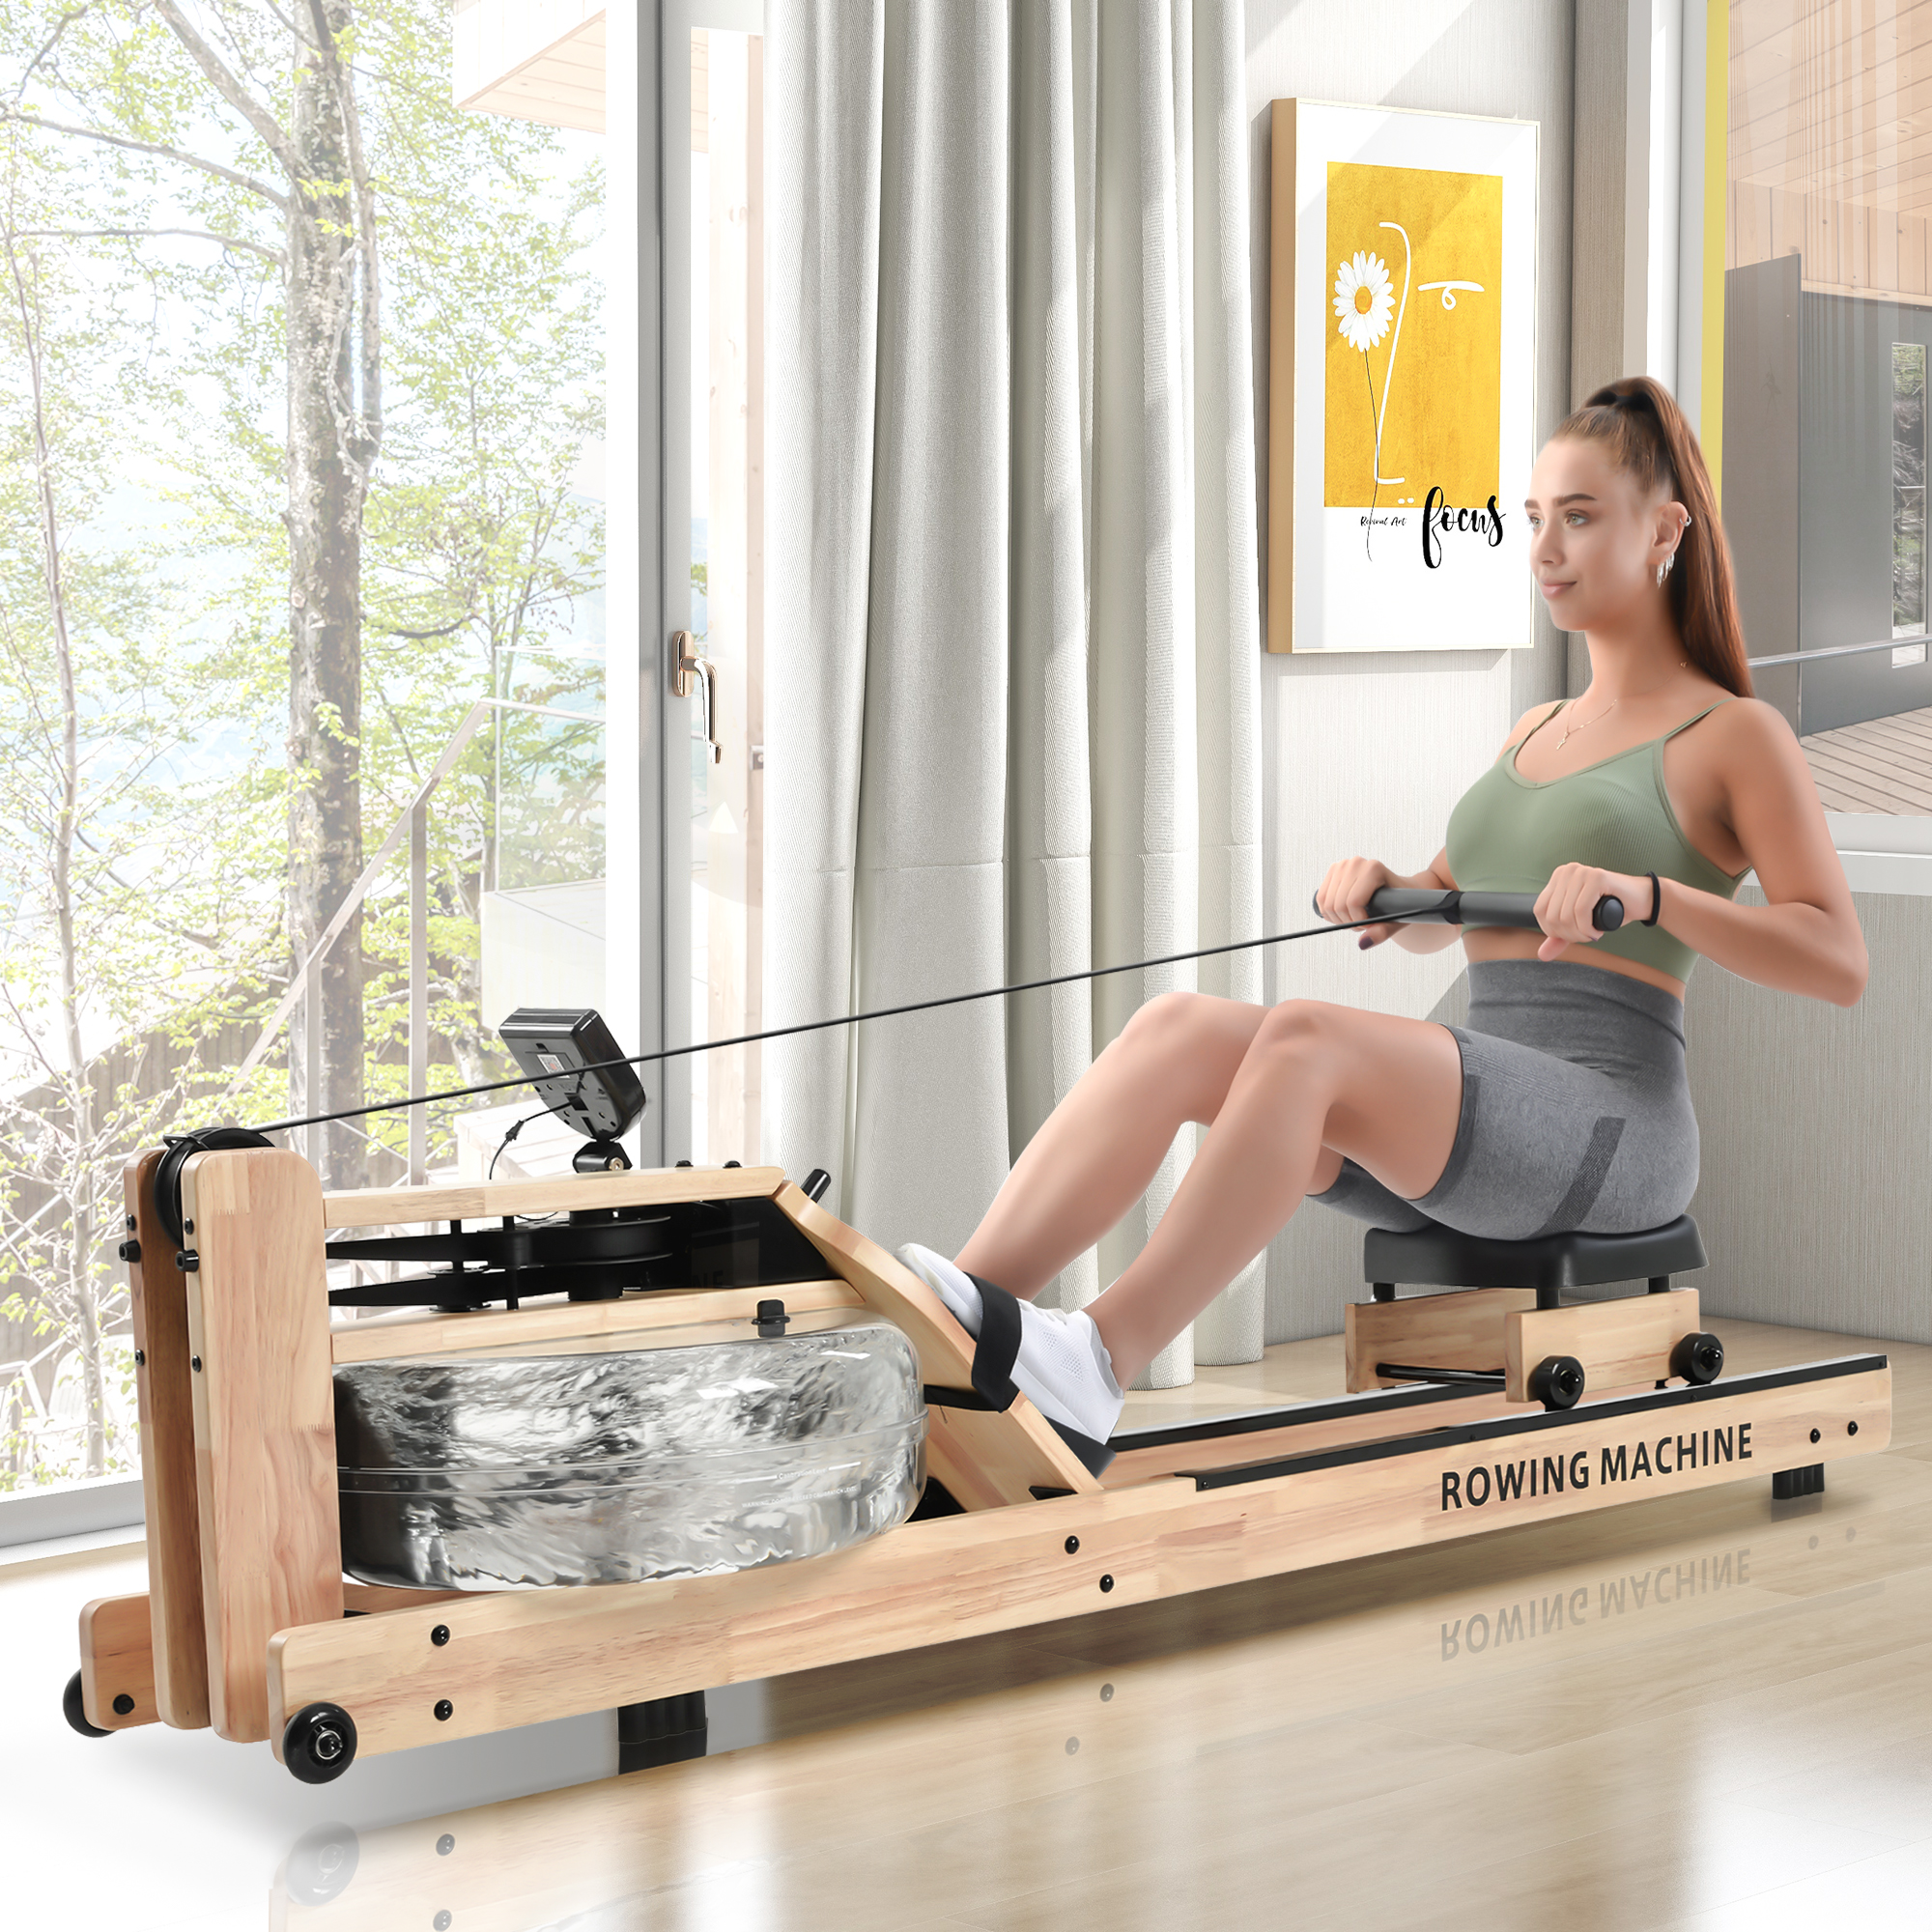 [US Direct] Water Resistance Oak Rowing Machine, Bluetooth Monitor,Workout For Home Gym